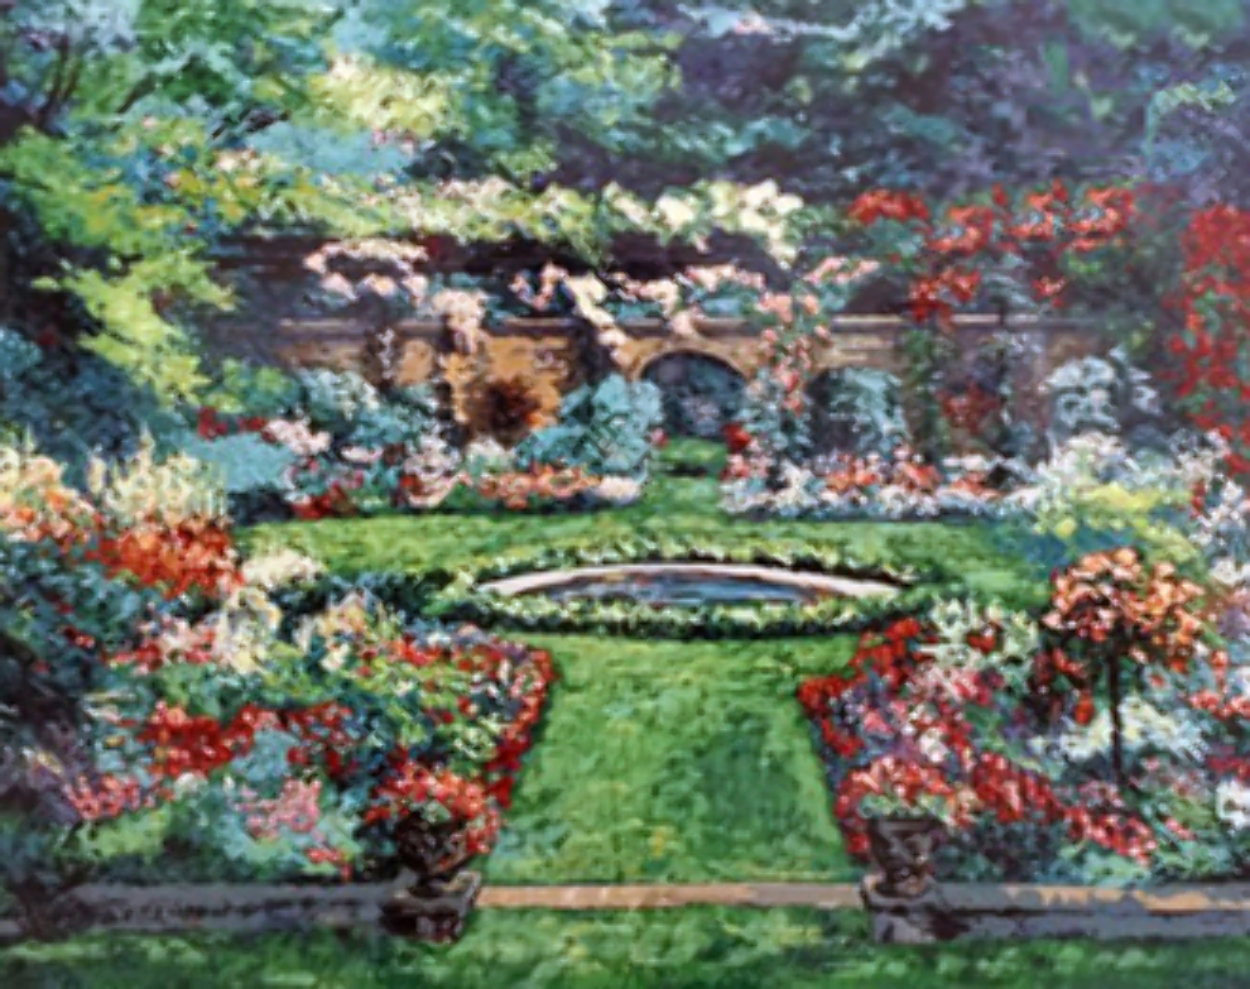 Summer Rose Garden 1990 Limited Edition Print by Mark King